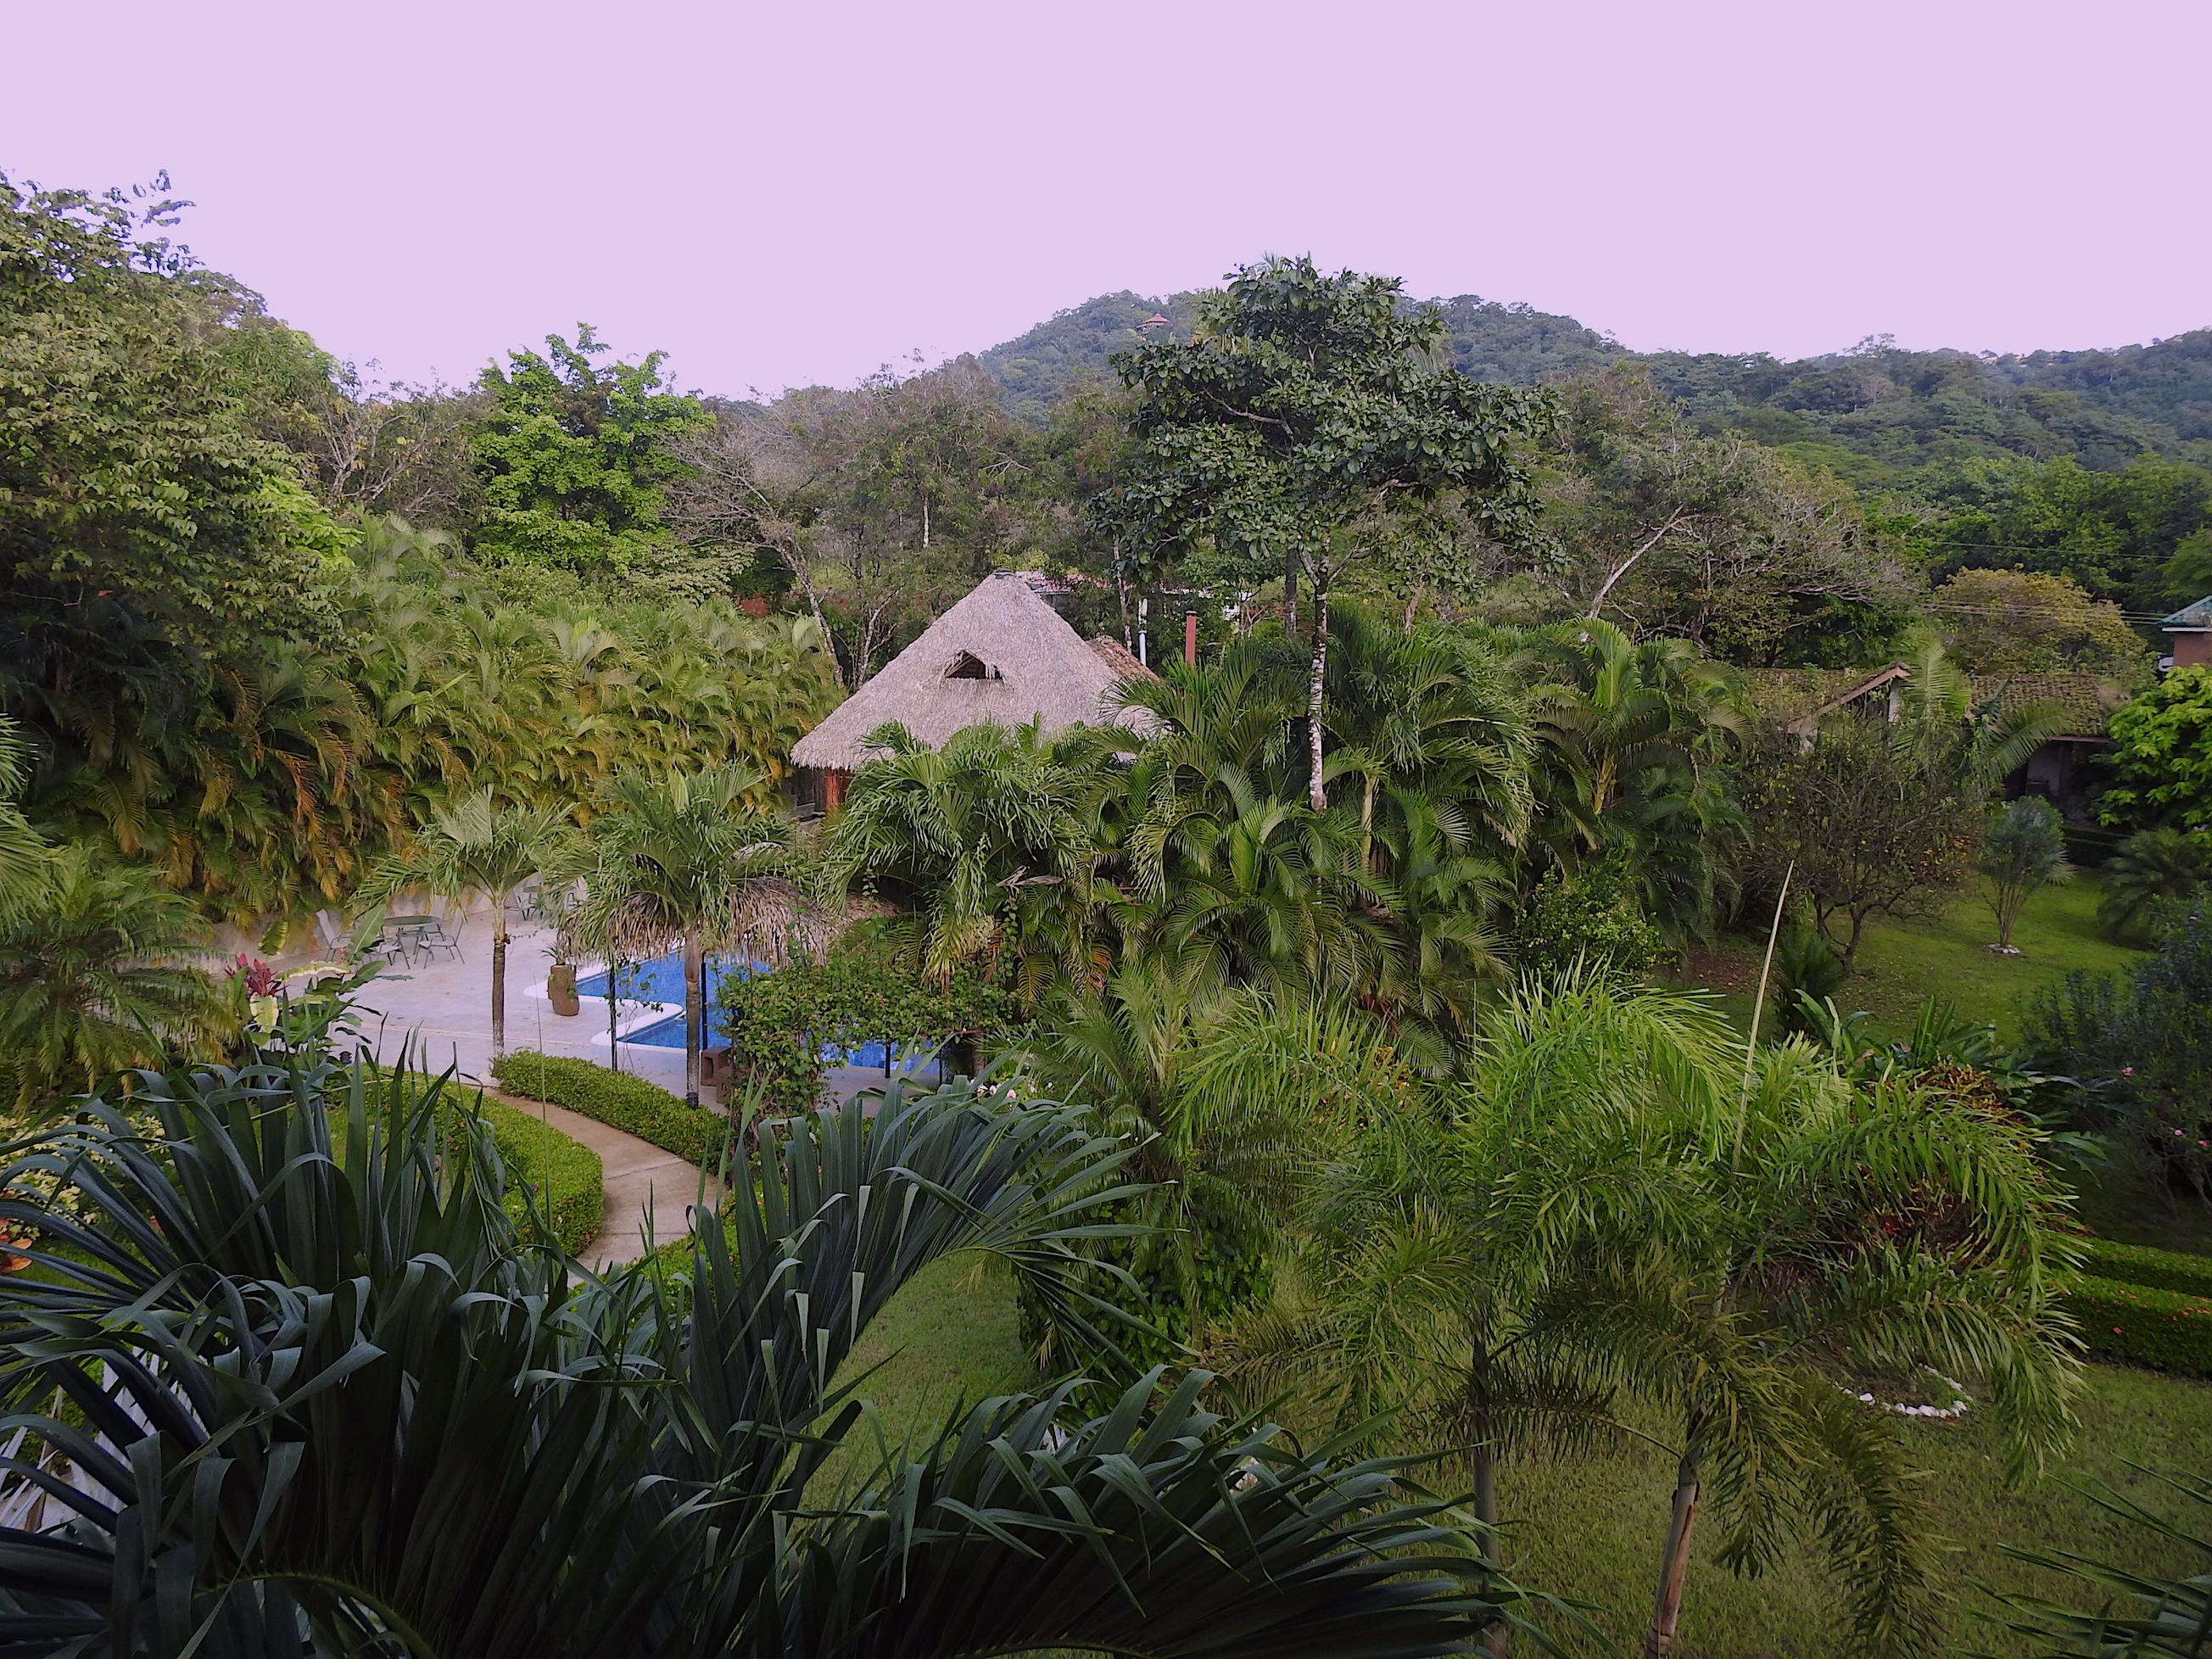 Rancho costa rica